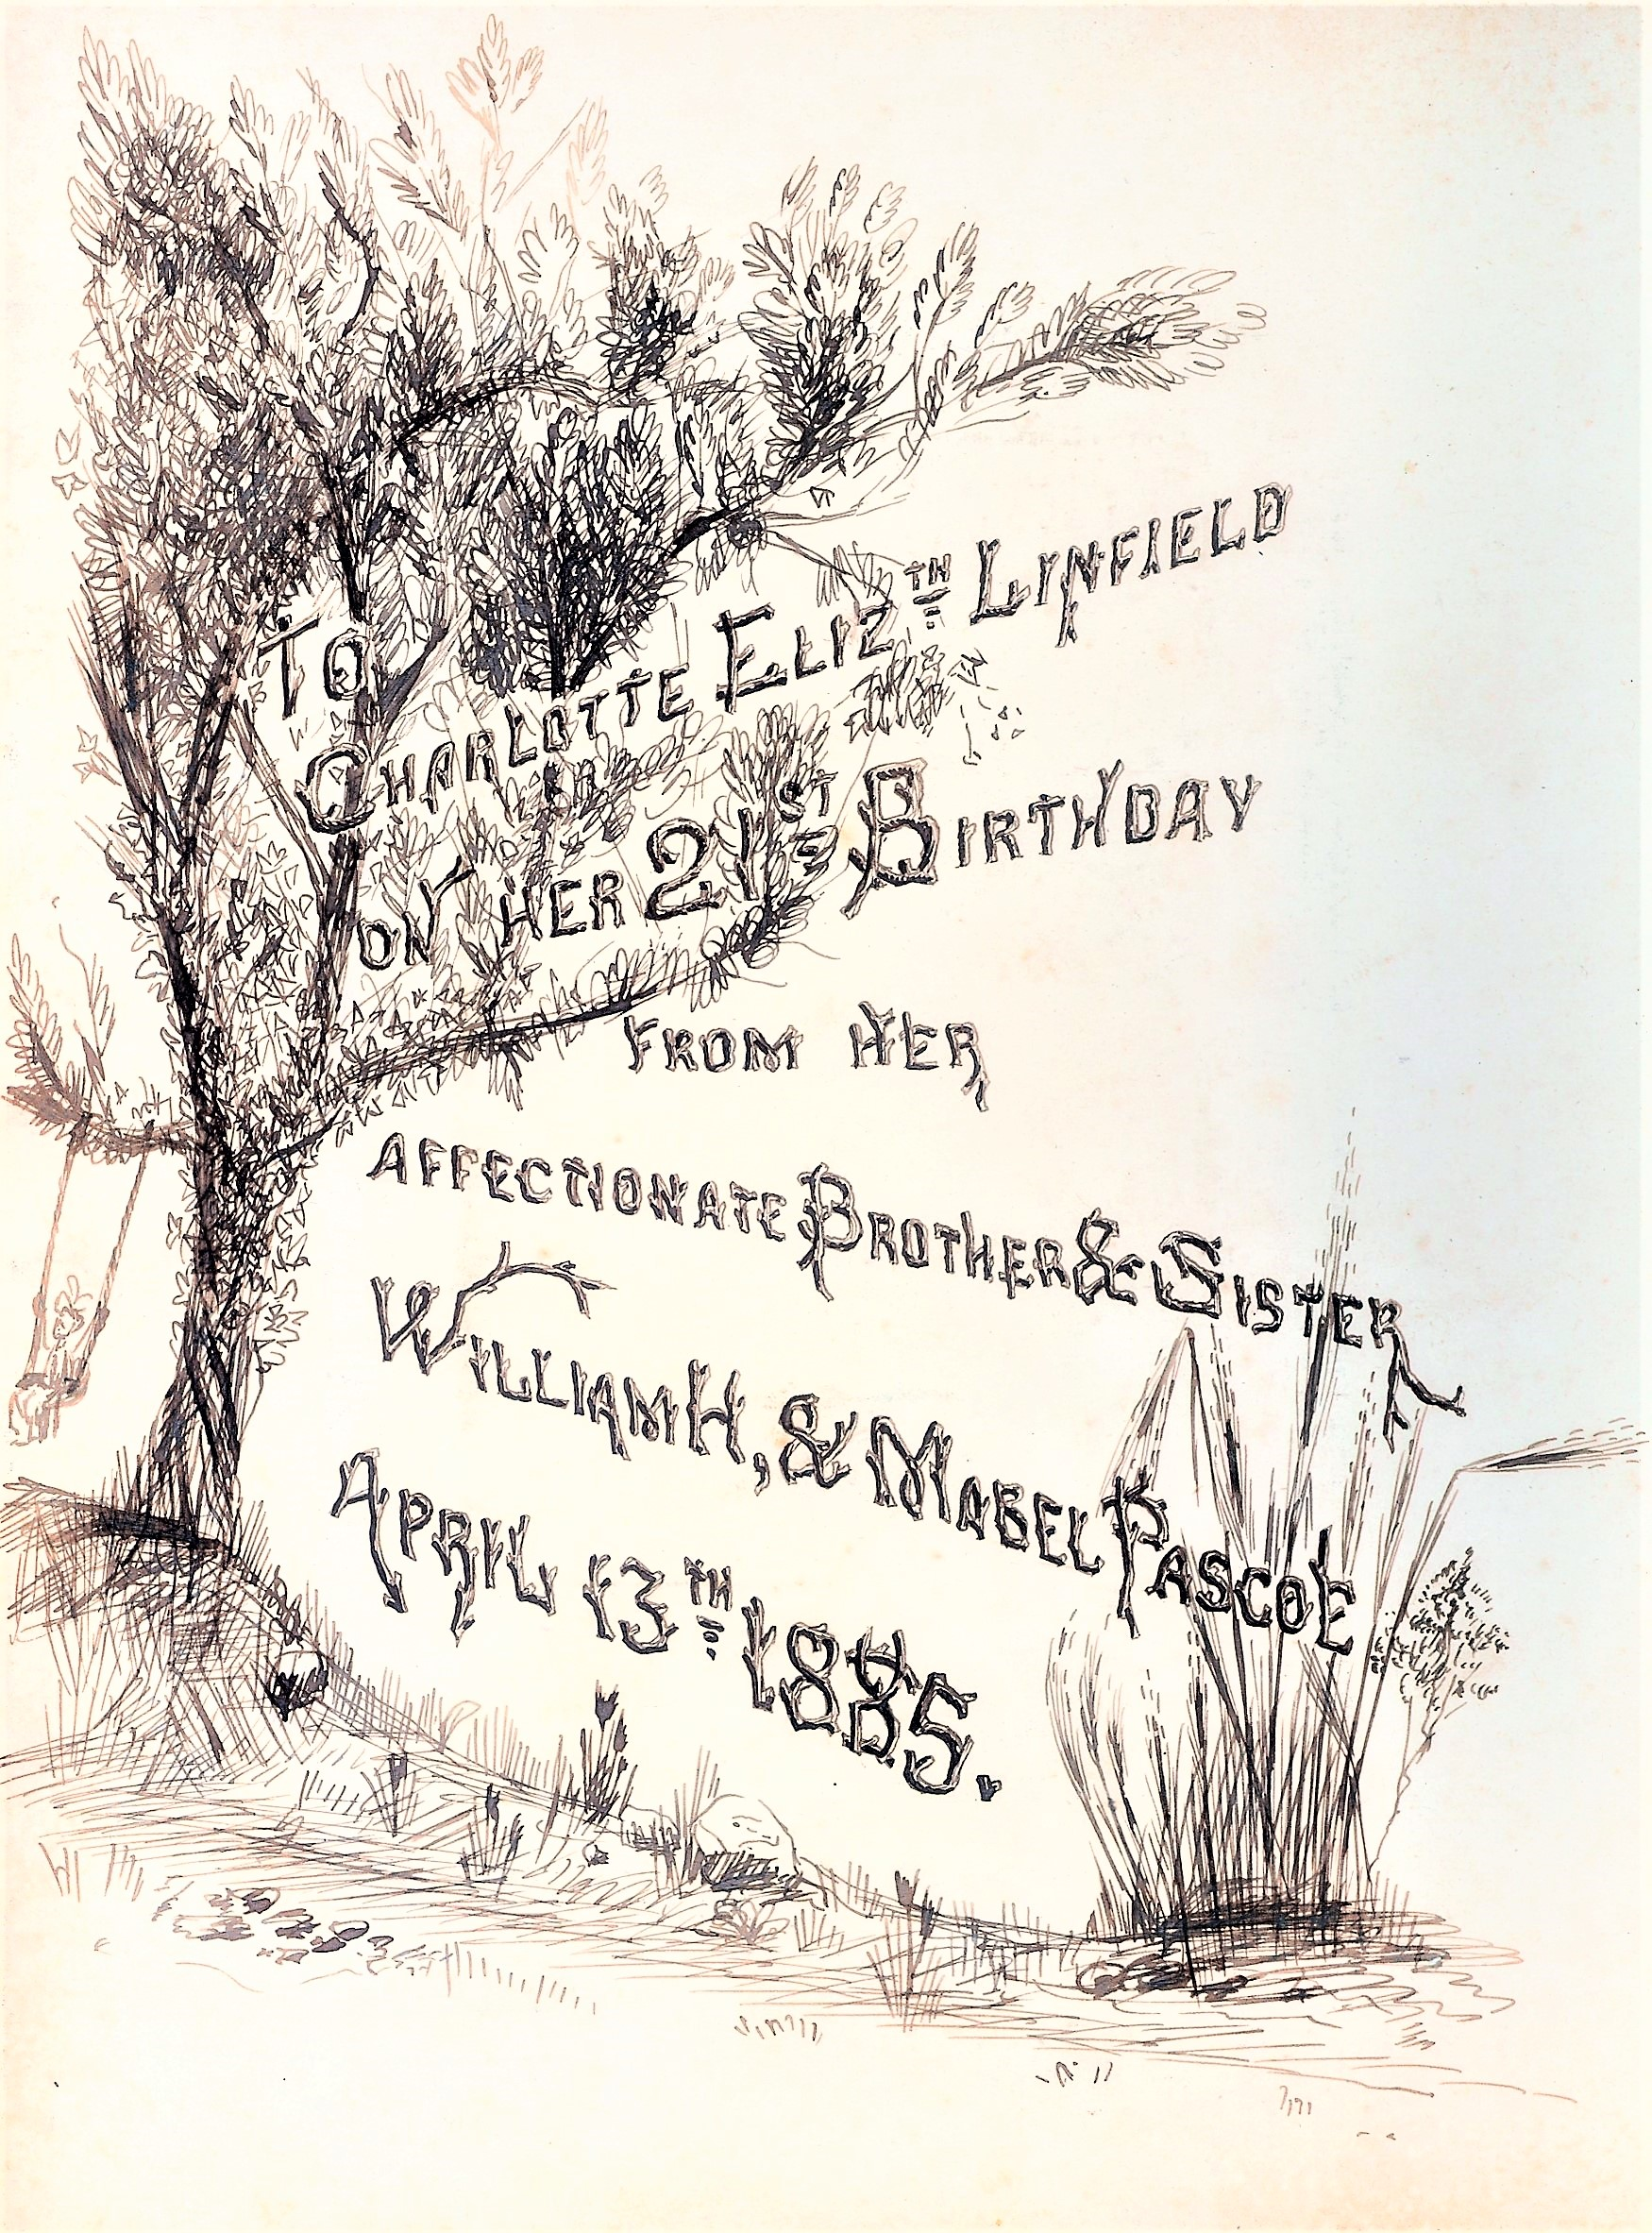 Fig. 1 Ink drawing inside front cover of album, 1885